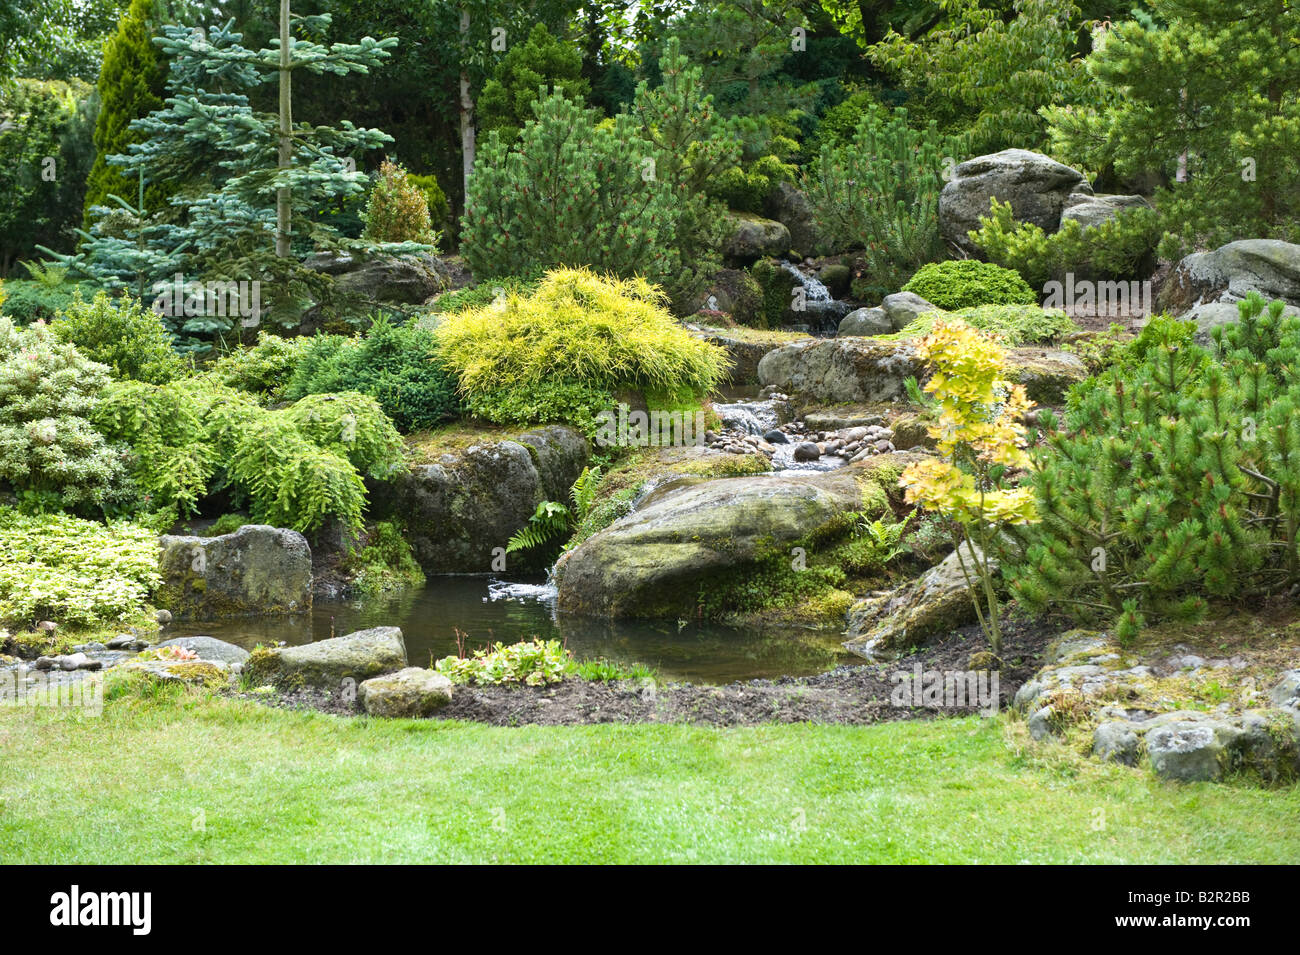 rock garden with pond waterfall shrubs and trees in garden design by bahaa seedhom north yorkshire england may